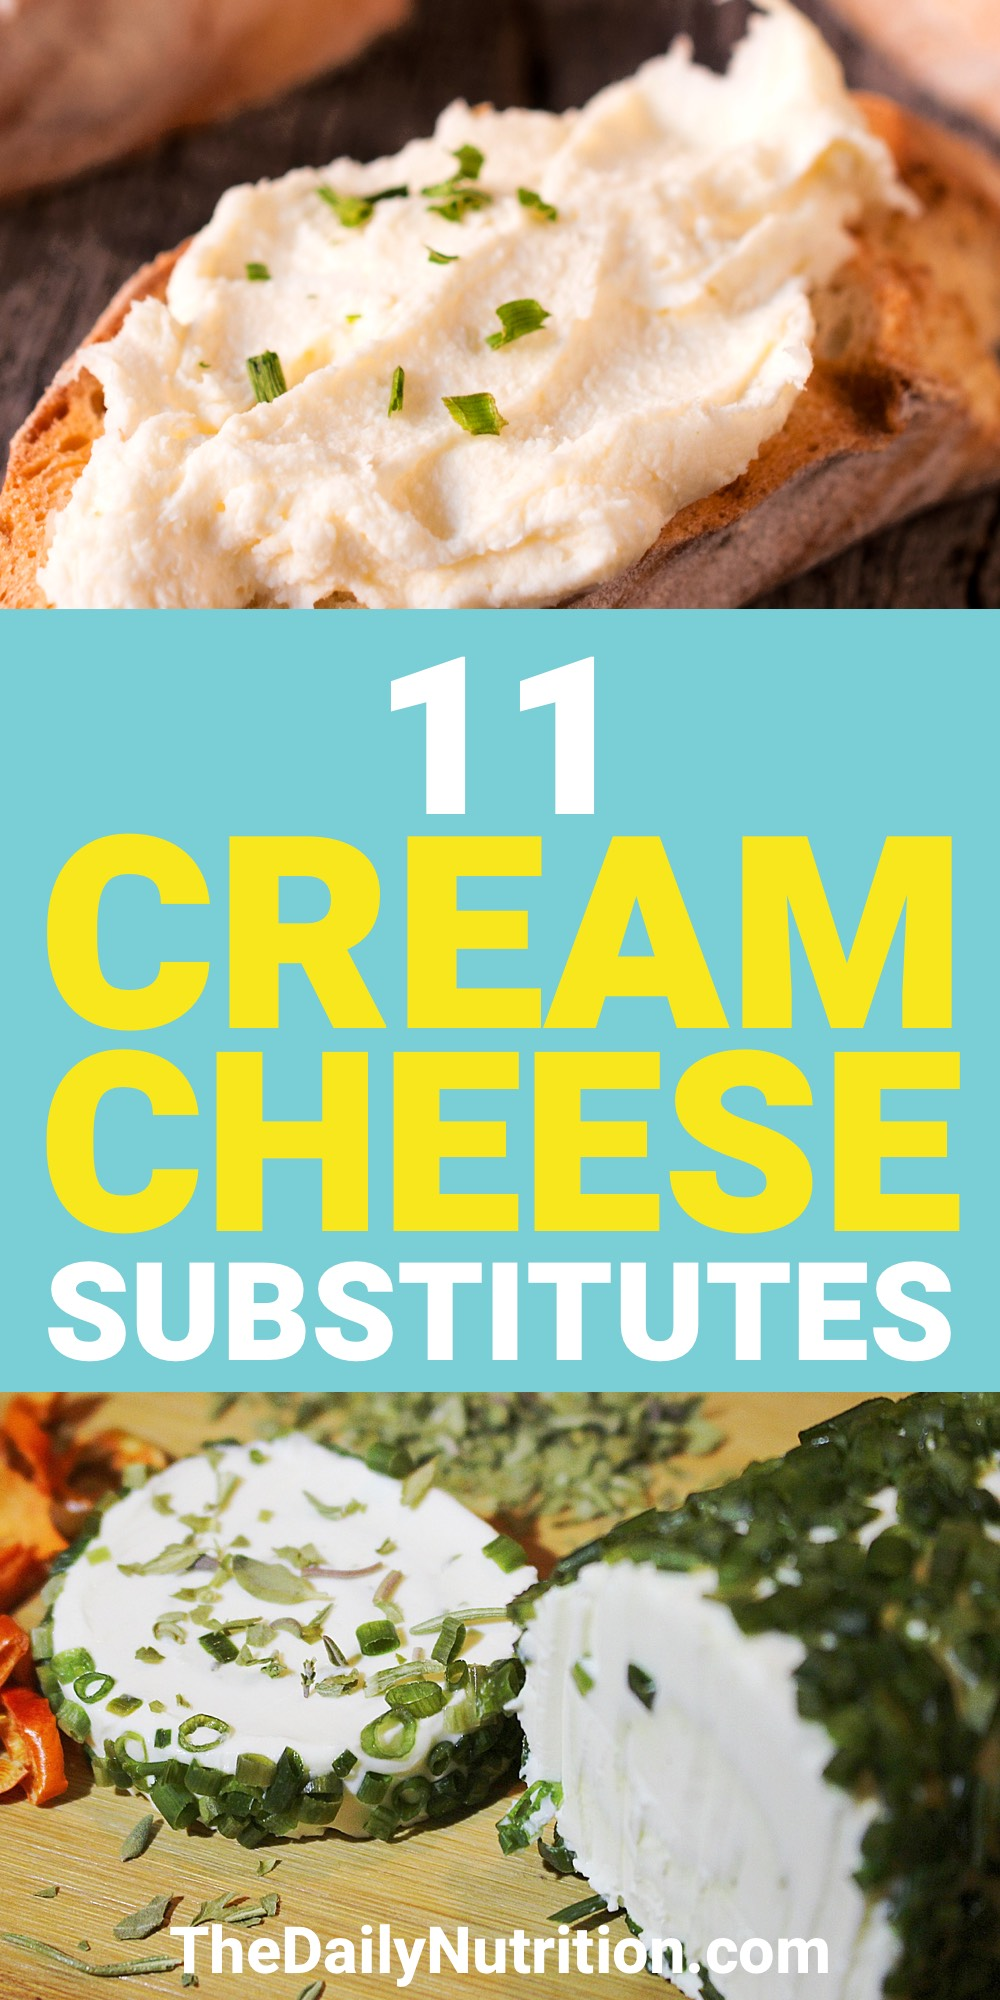 Cream cheese is good but not everyone can enjoy it. Here are 11 cream cheese substitutes that everyone can use to enjoy something similar to cream cheese.